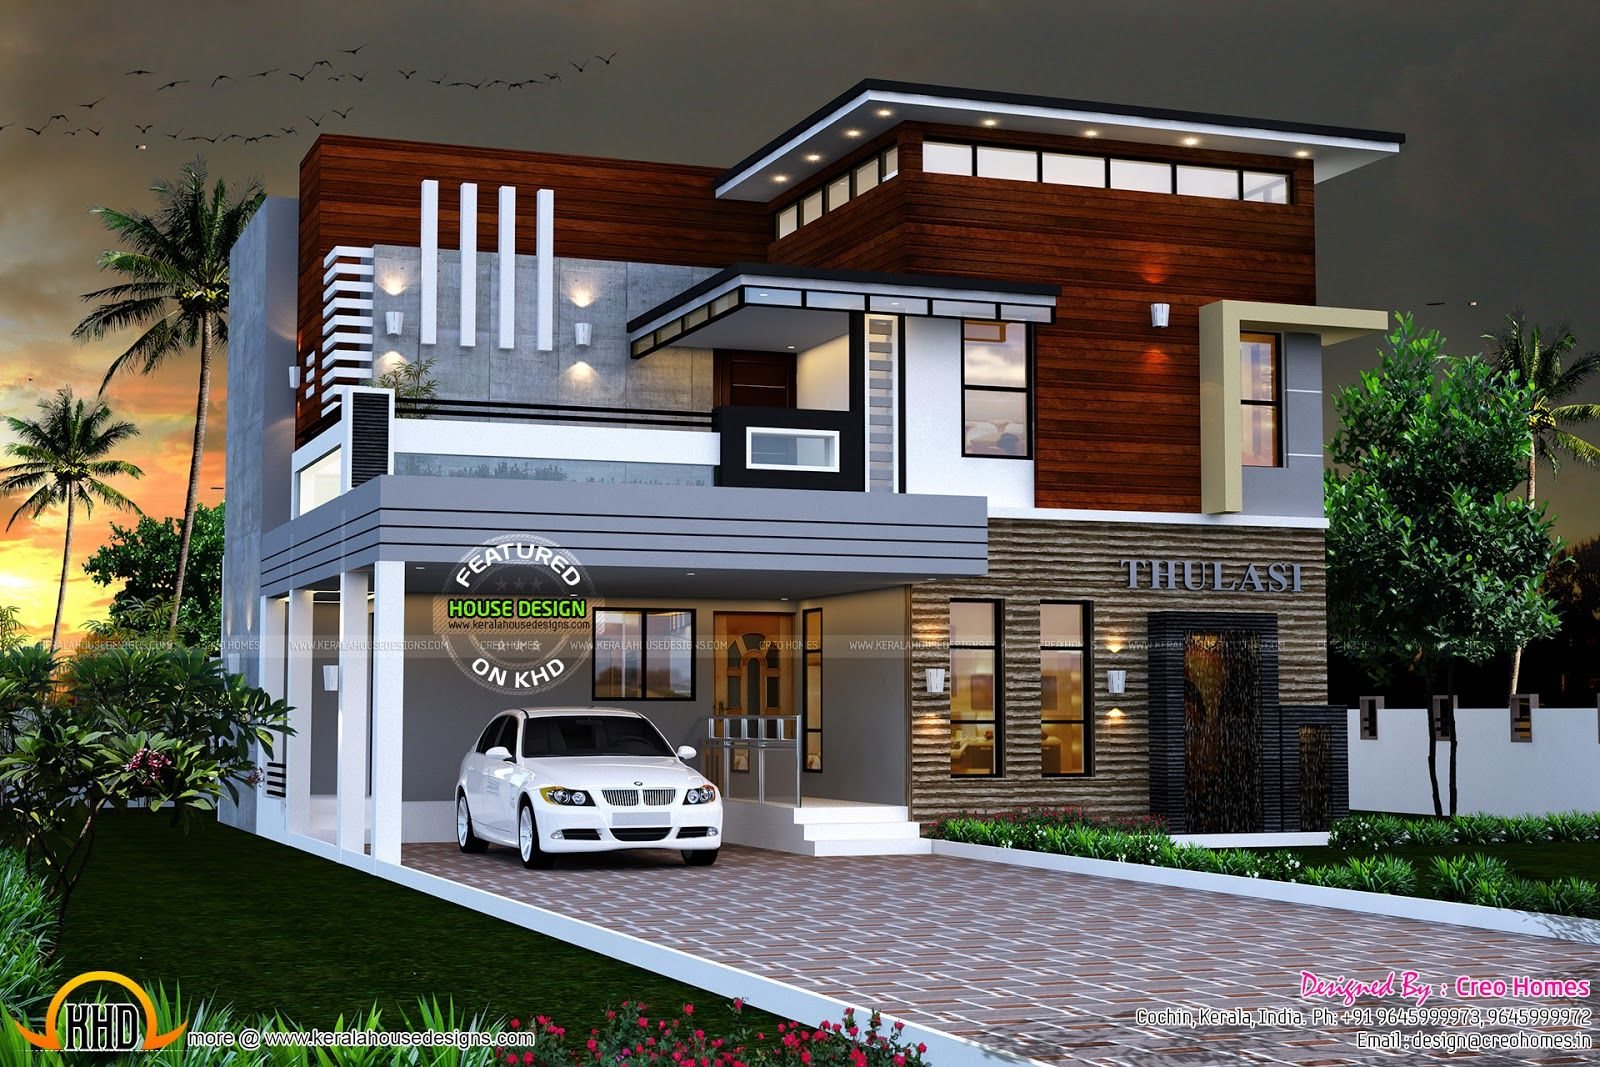 Eterior design modern small house architecture building for Contemporary model house